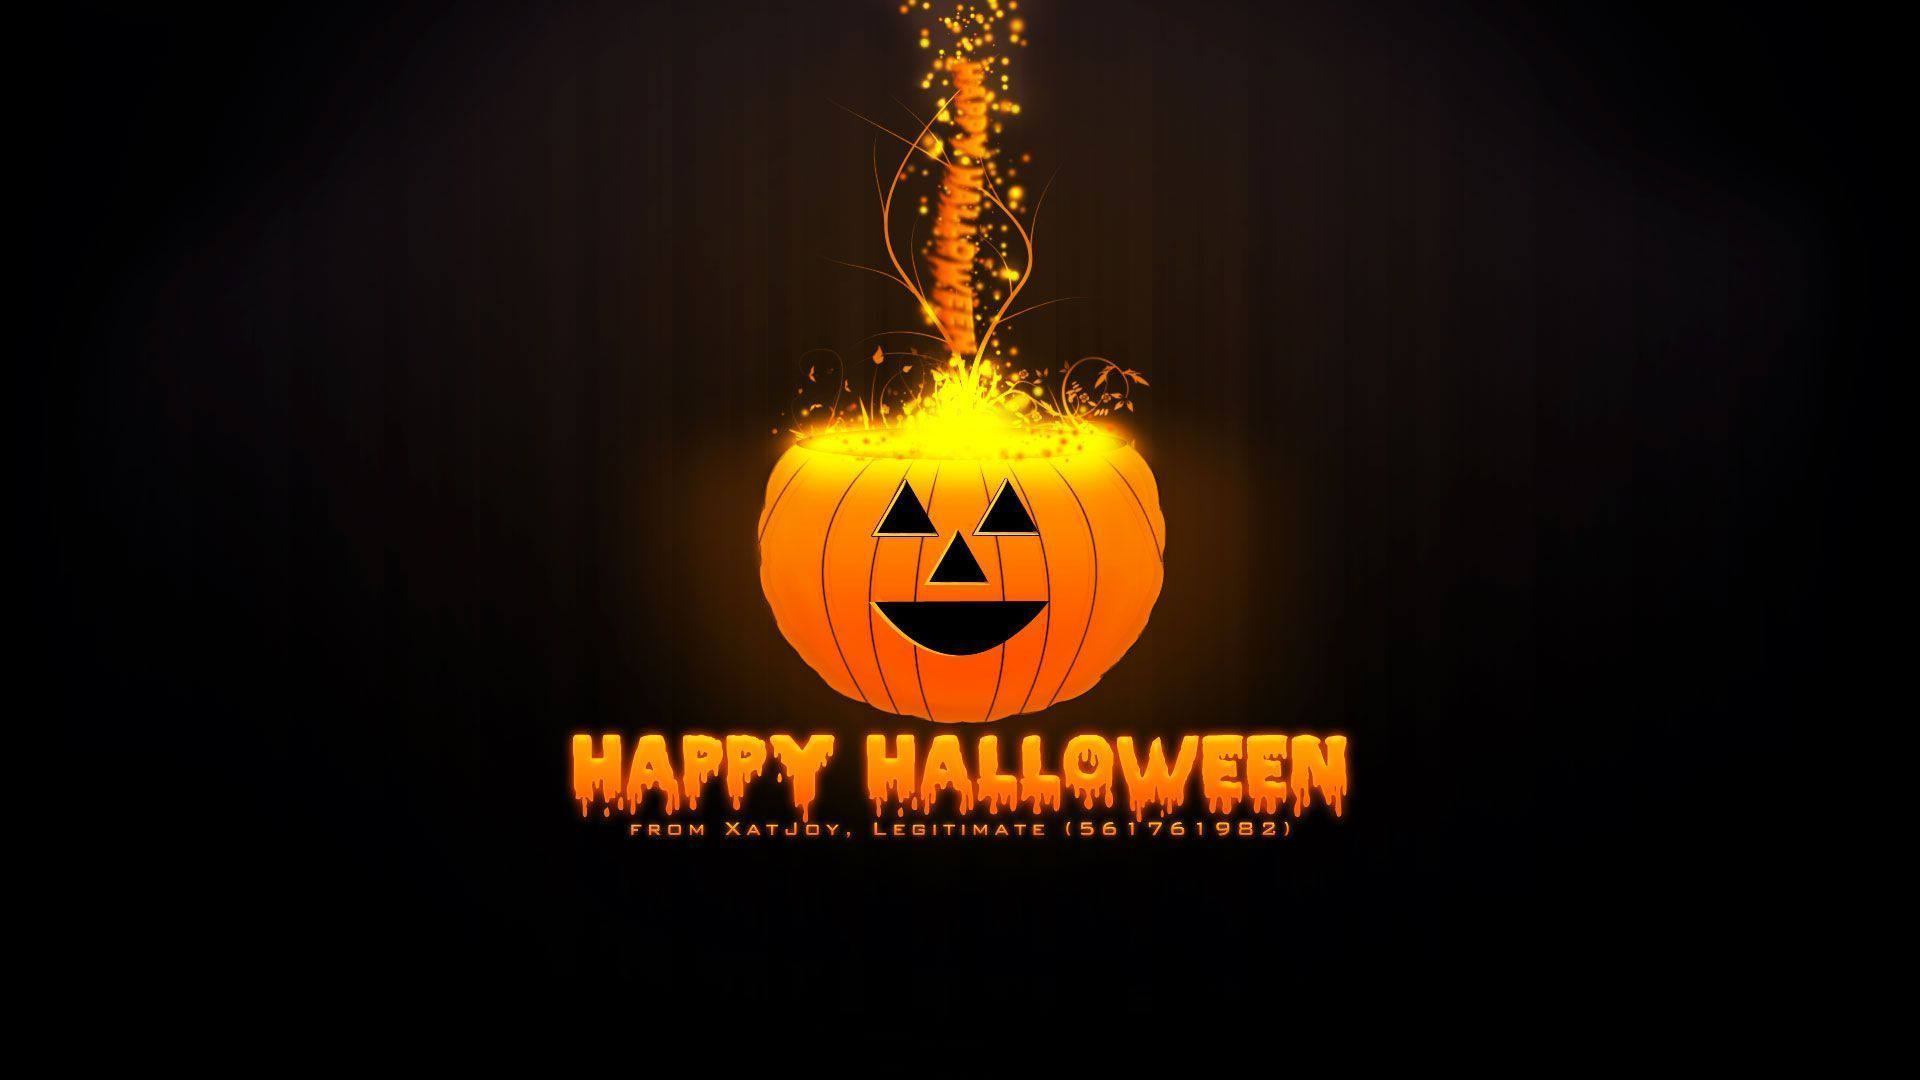 Best Happy Halloween Images Wallpapers Pictures Photos 2017